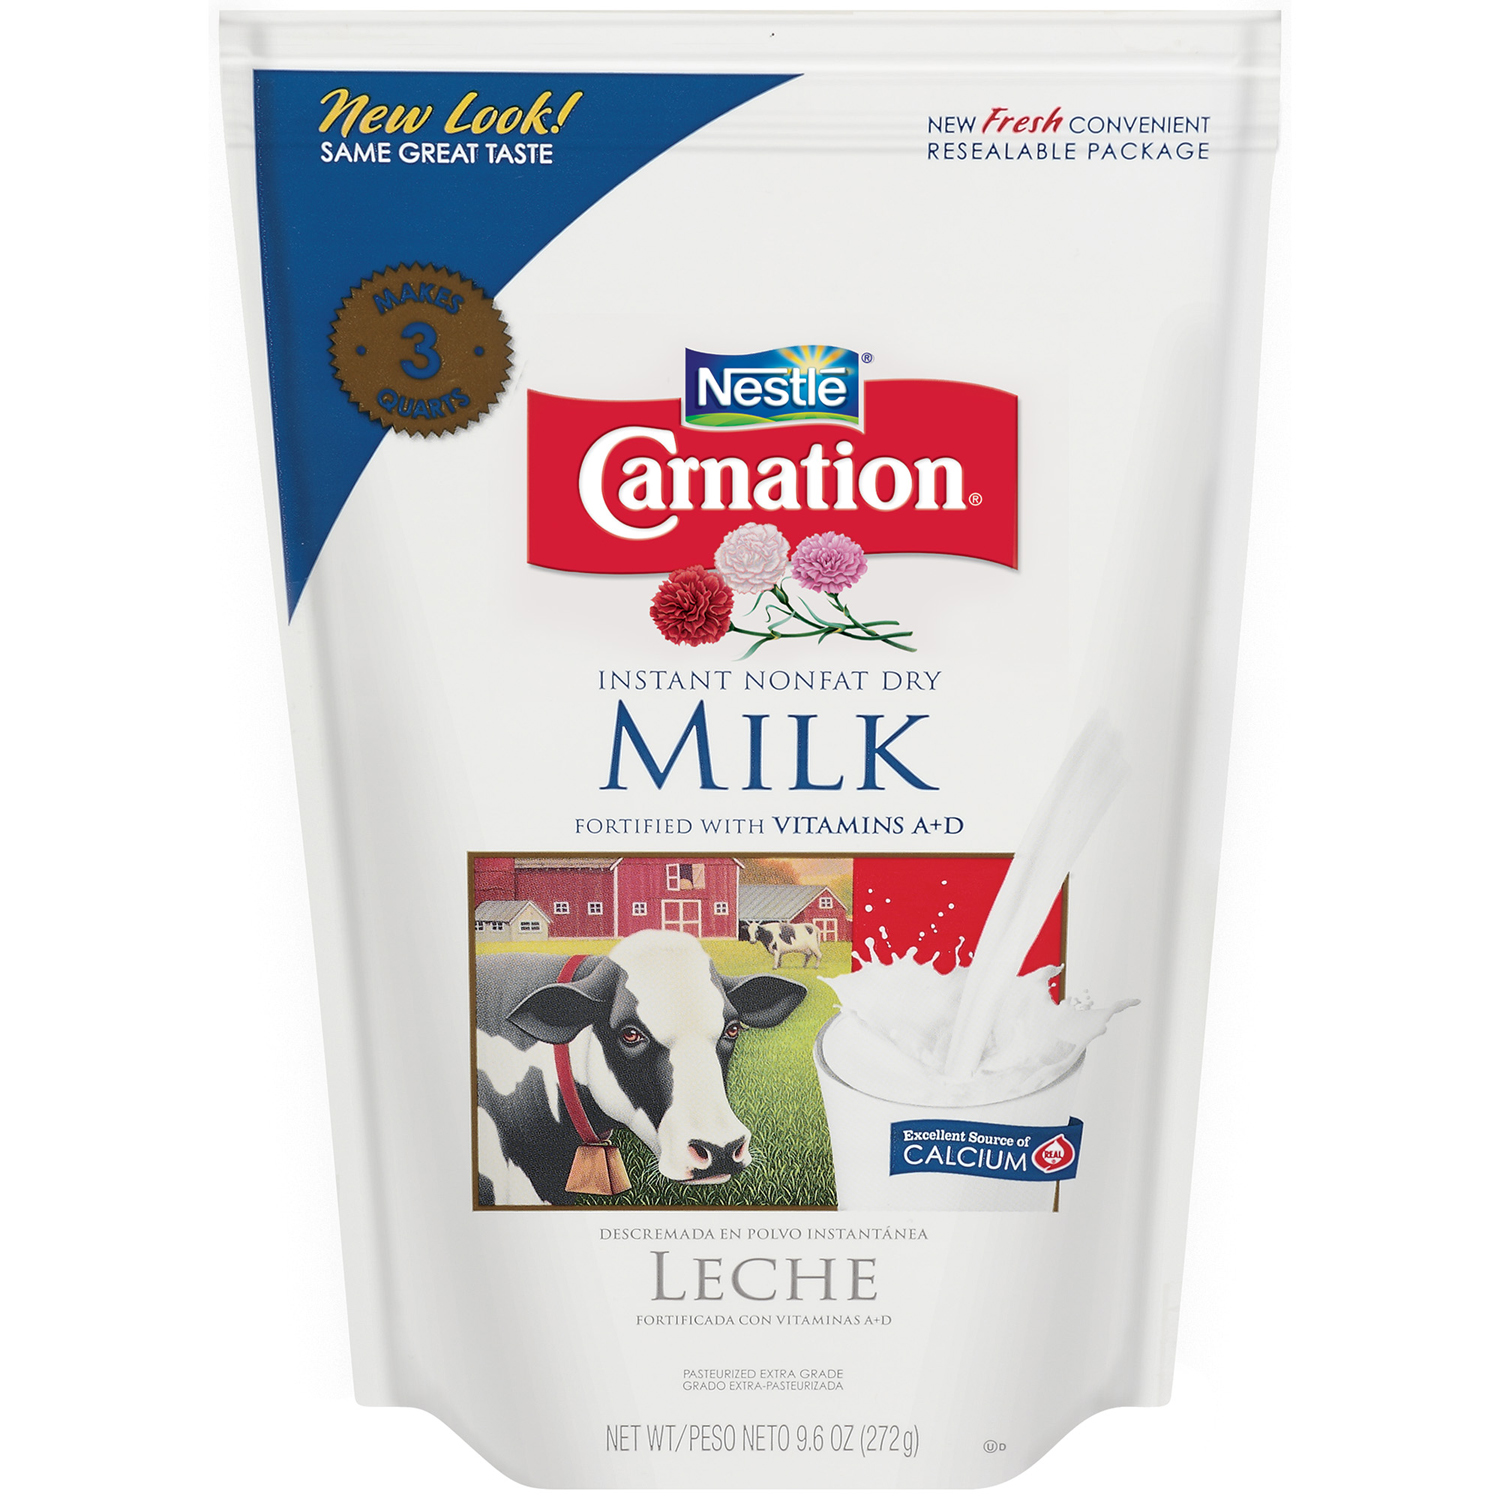 CARNATION Instant Nonfat Dry Milk 9.6 oz. Bag